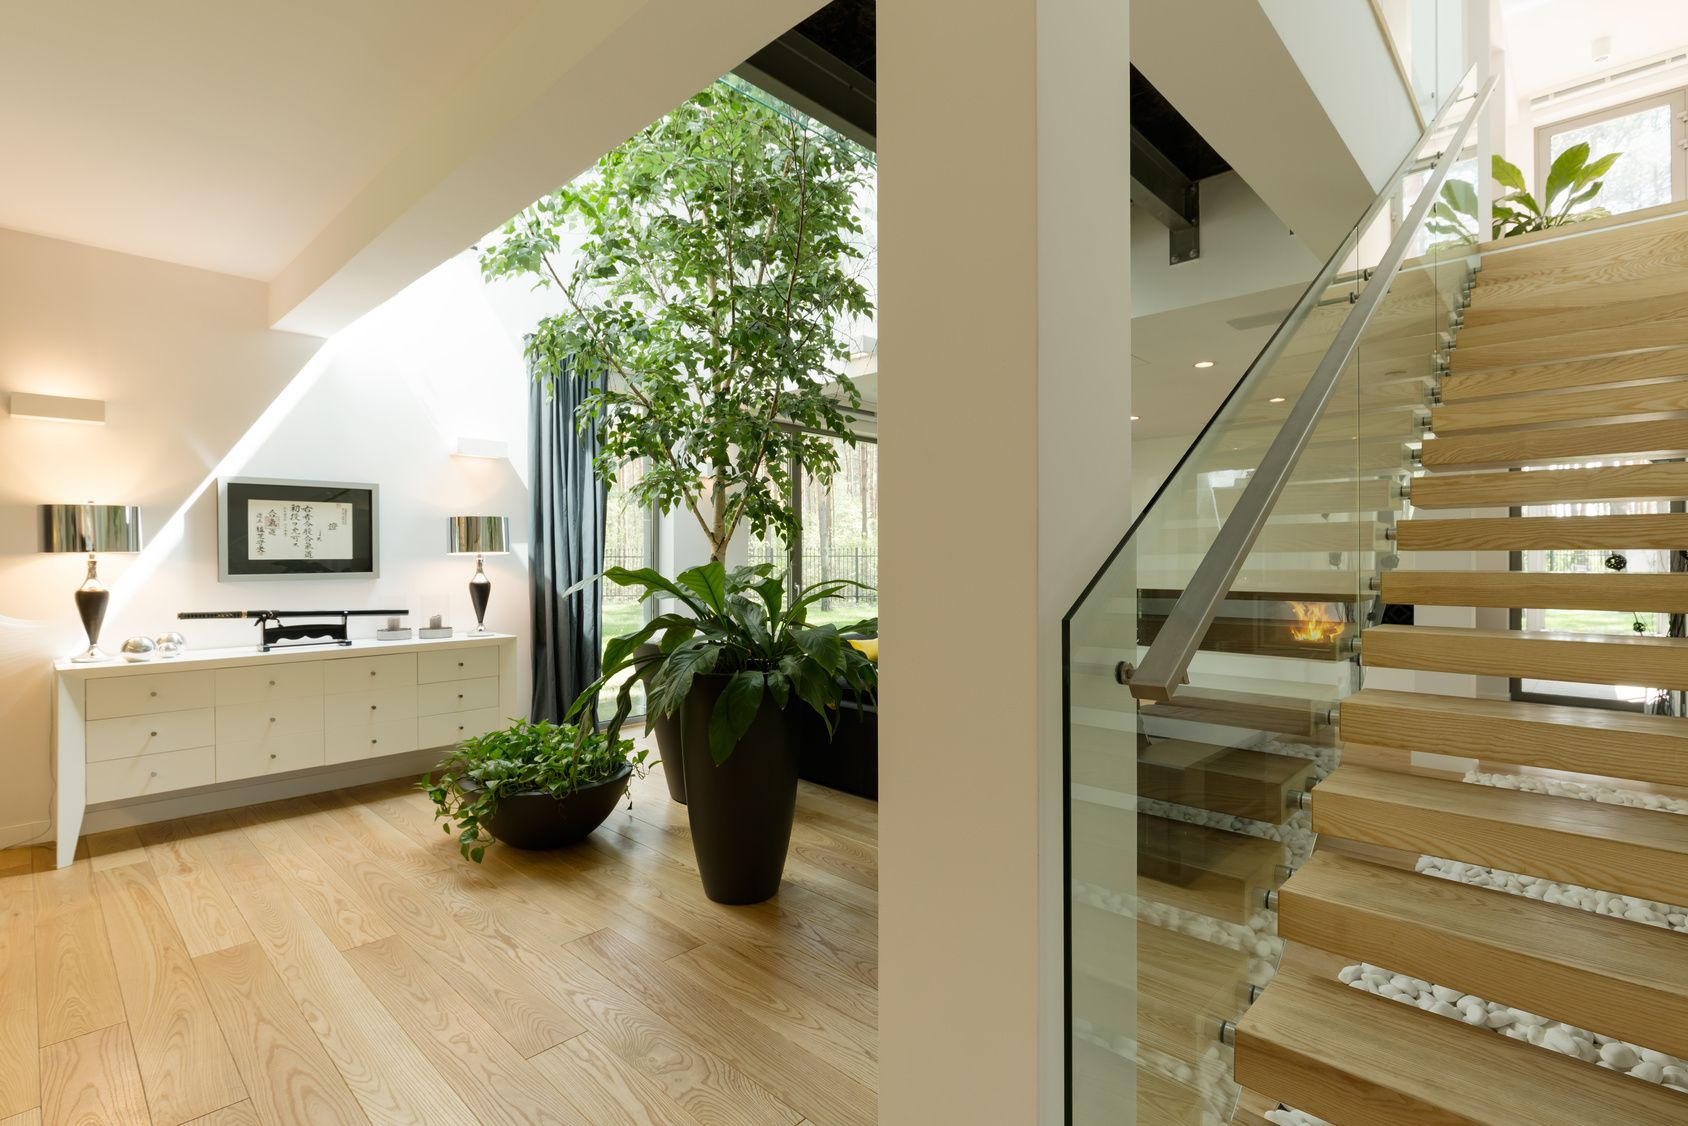 The combination of glass and wood will give the interior a